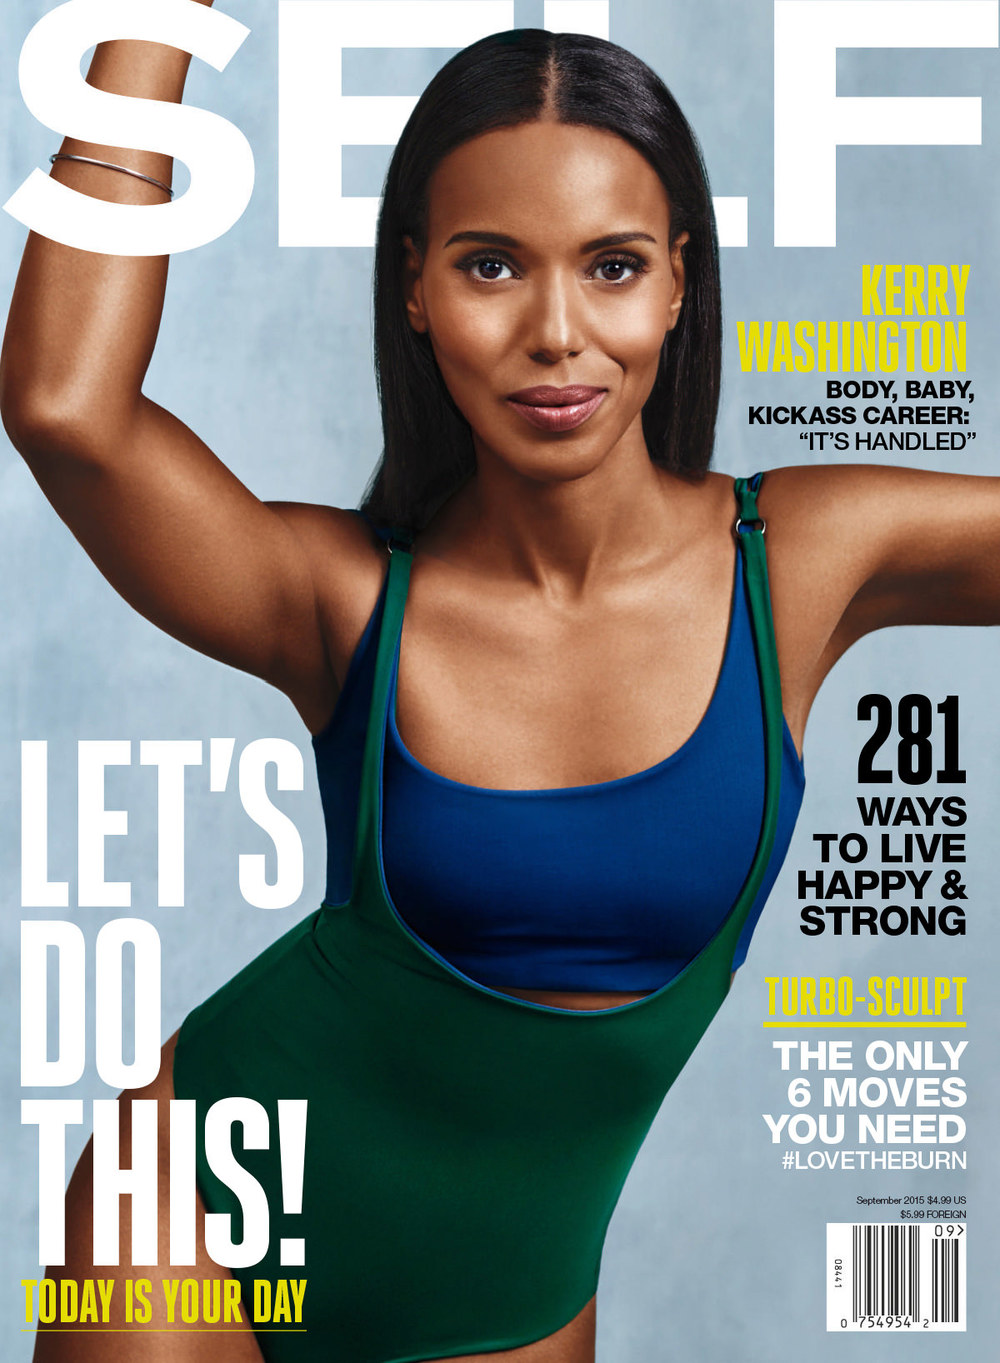 Kerry-Washington-SELF-Magazine-September-2015-Salvatore-Ferragamo-Tom-Lorenzo-Site-TLO-1.jpg